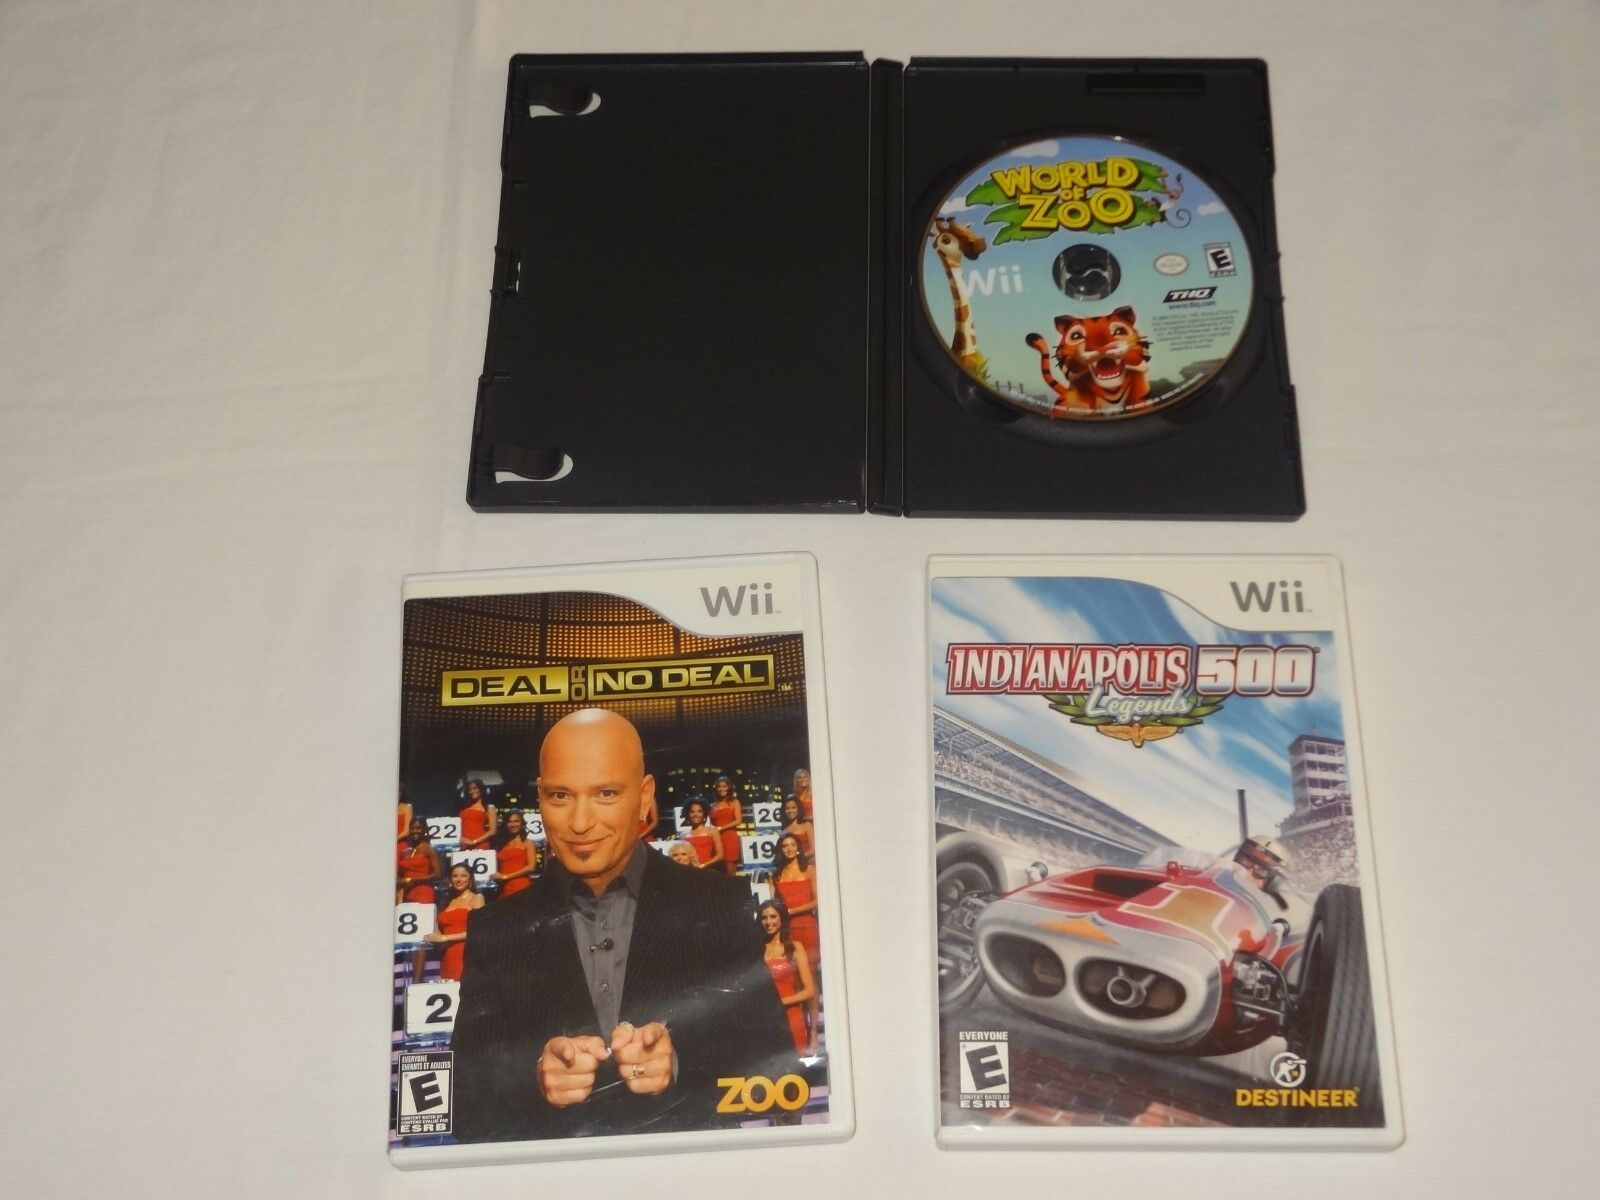 Nintendo Wii  World of Zoo Disk Only Indianapolis 500 Legends Deal or No deal image 2